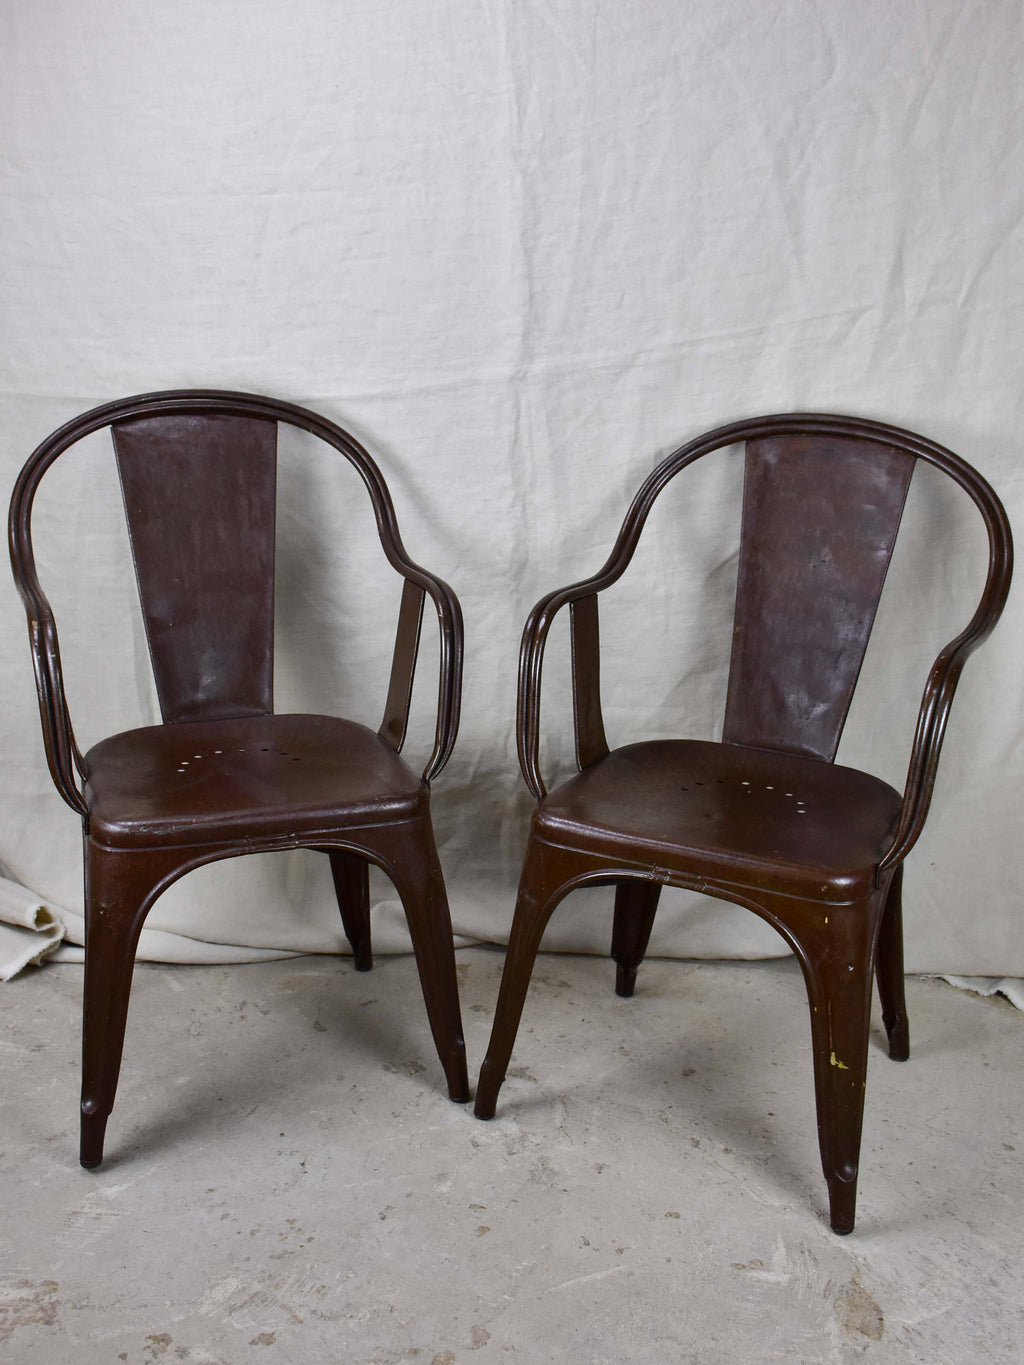 Pair of original Tolix armchairs - 1930's